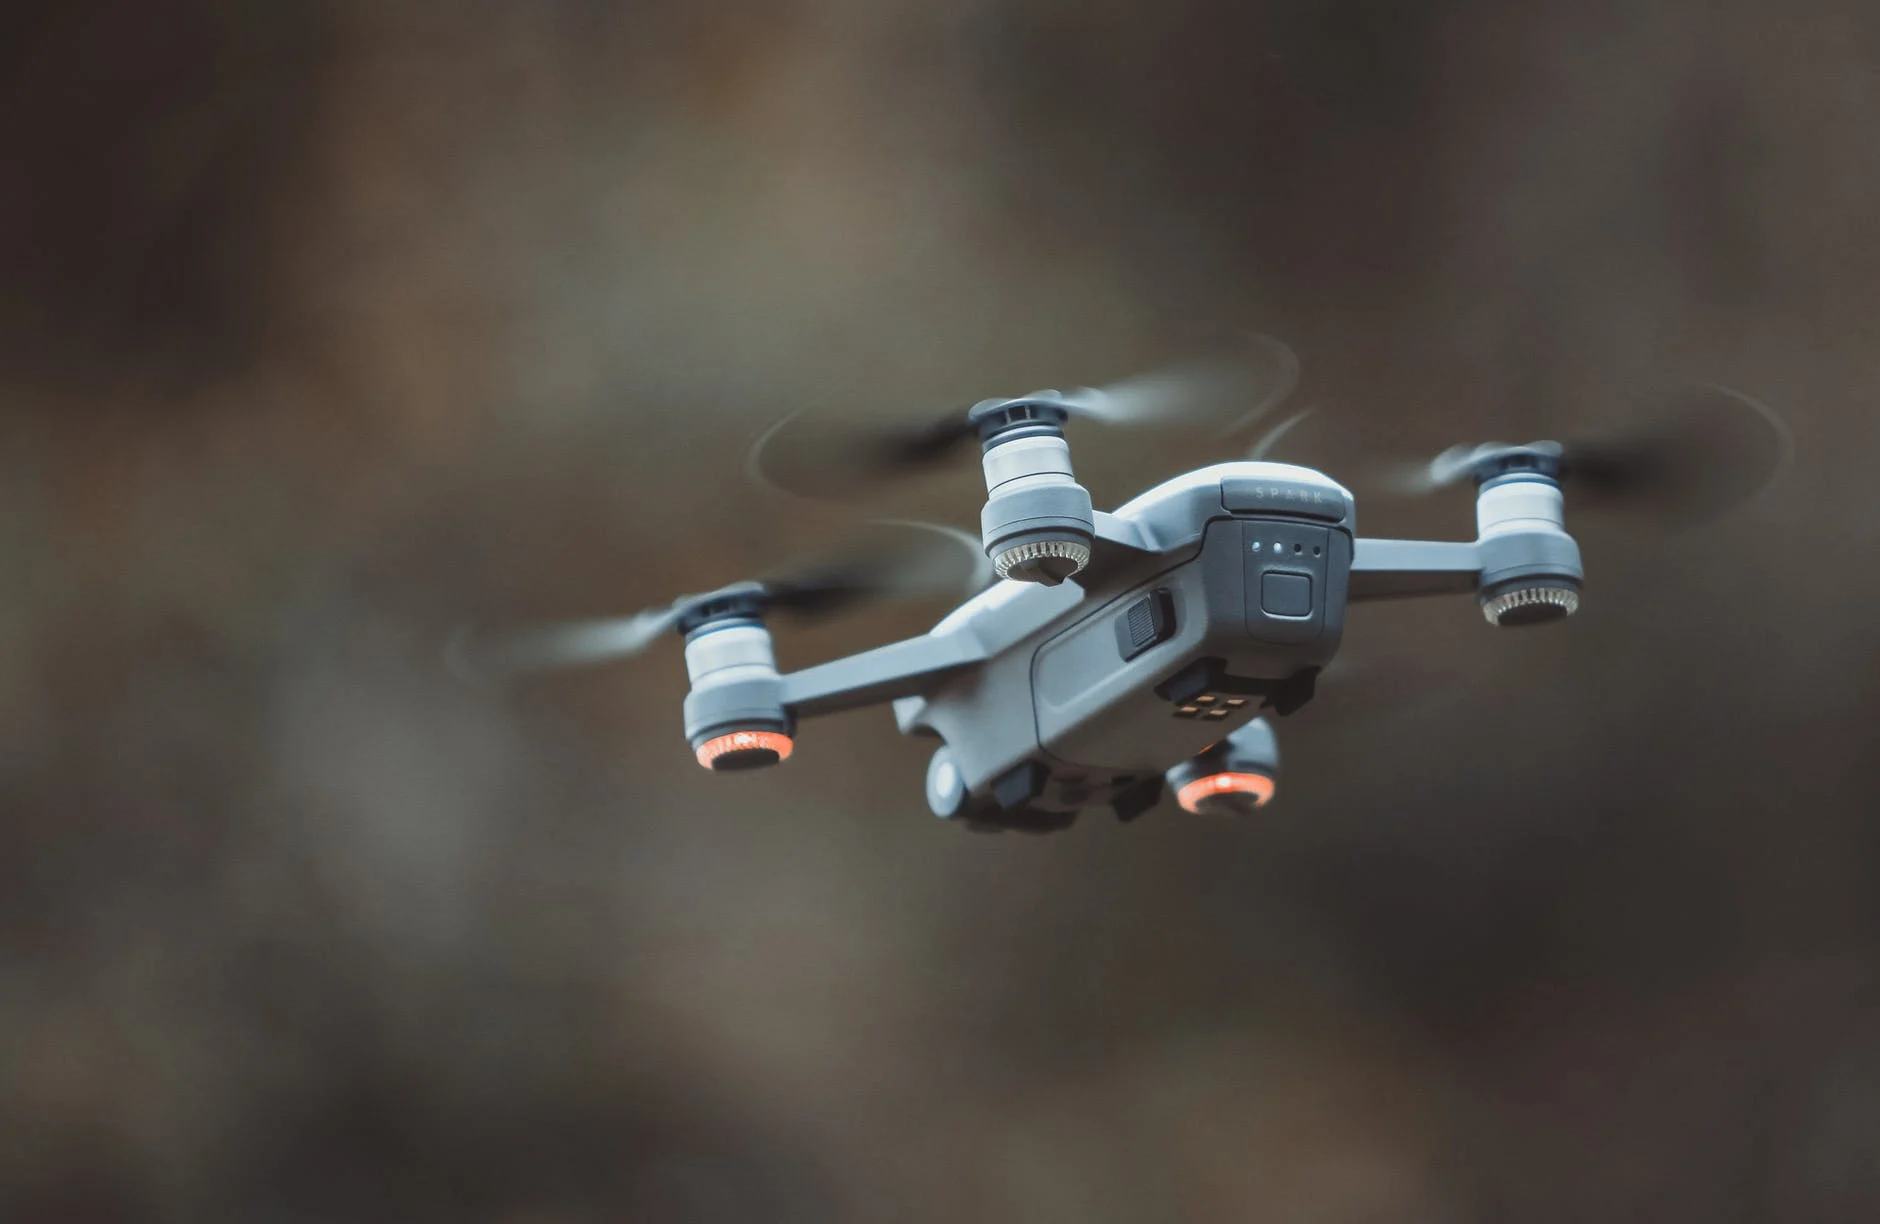 What Is The Difference Between Consumer And Commercial Drones?